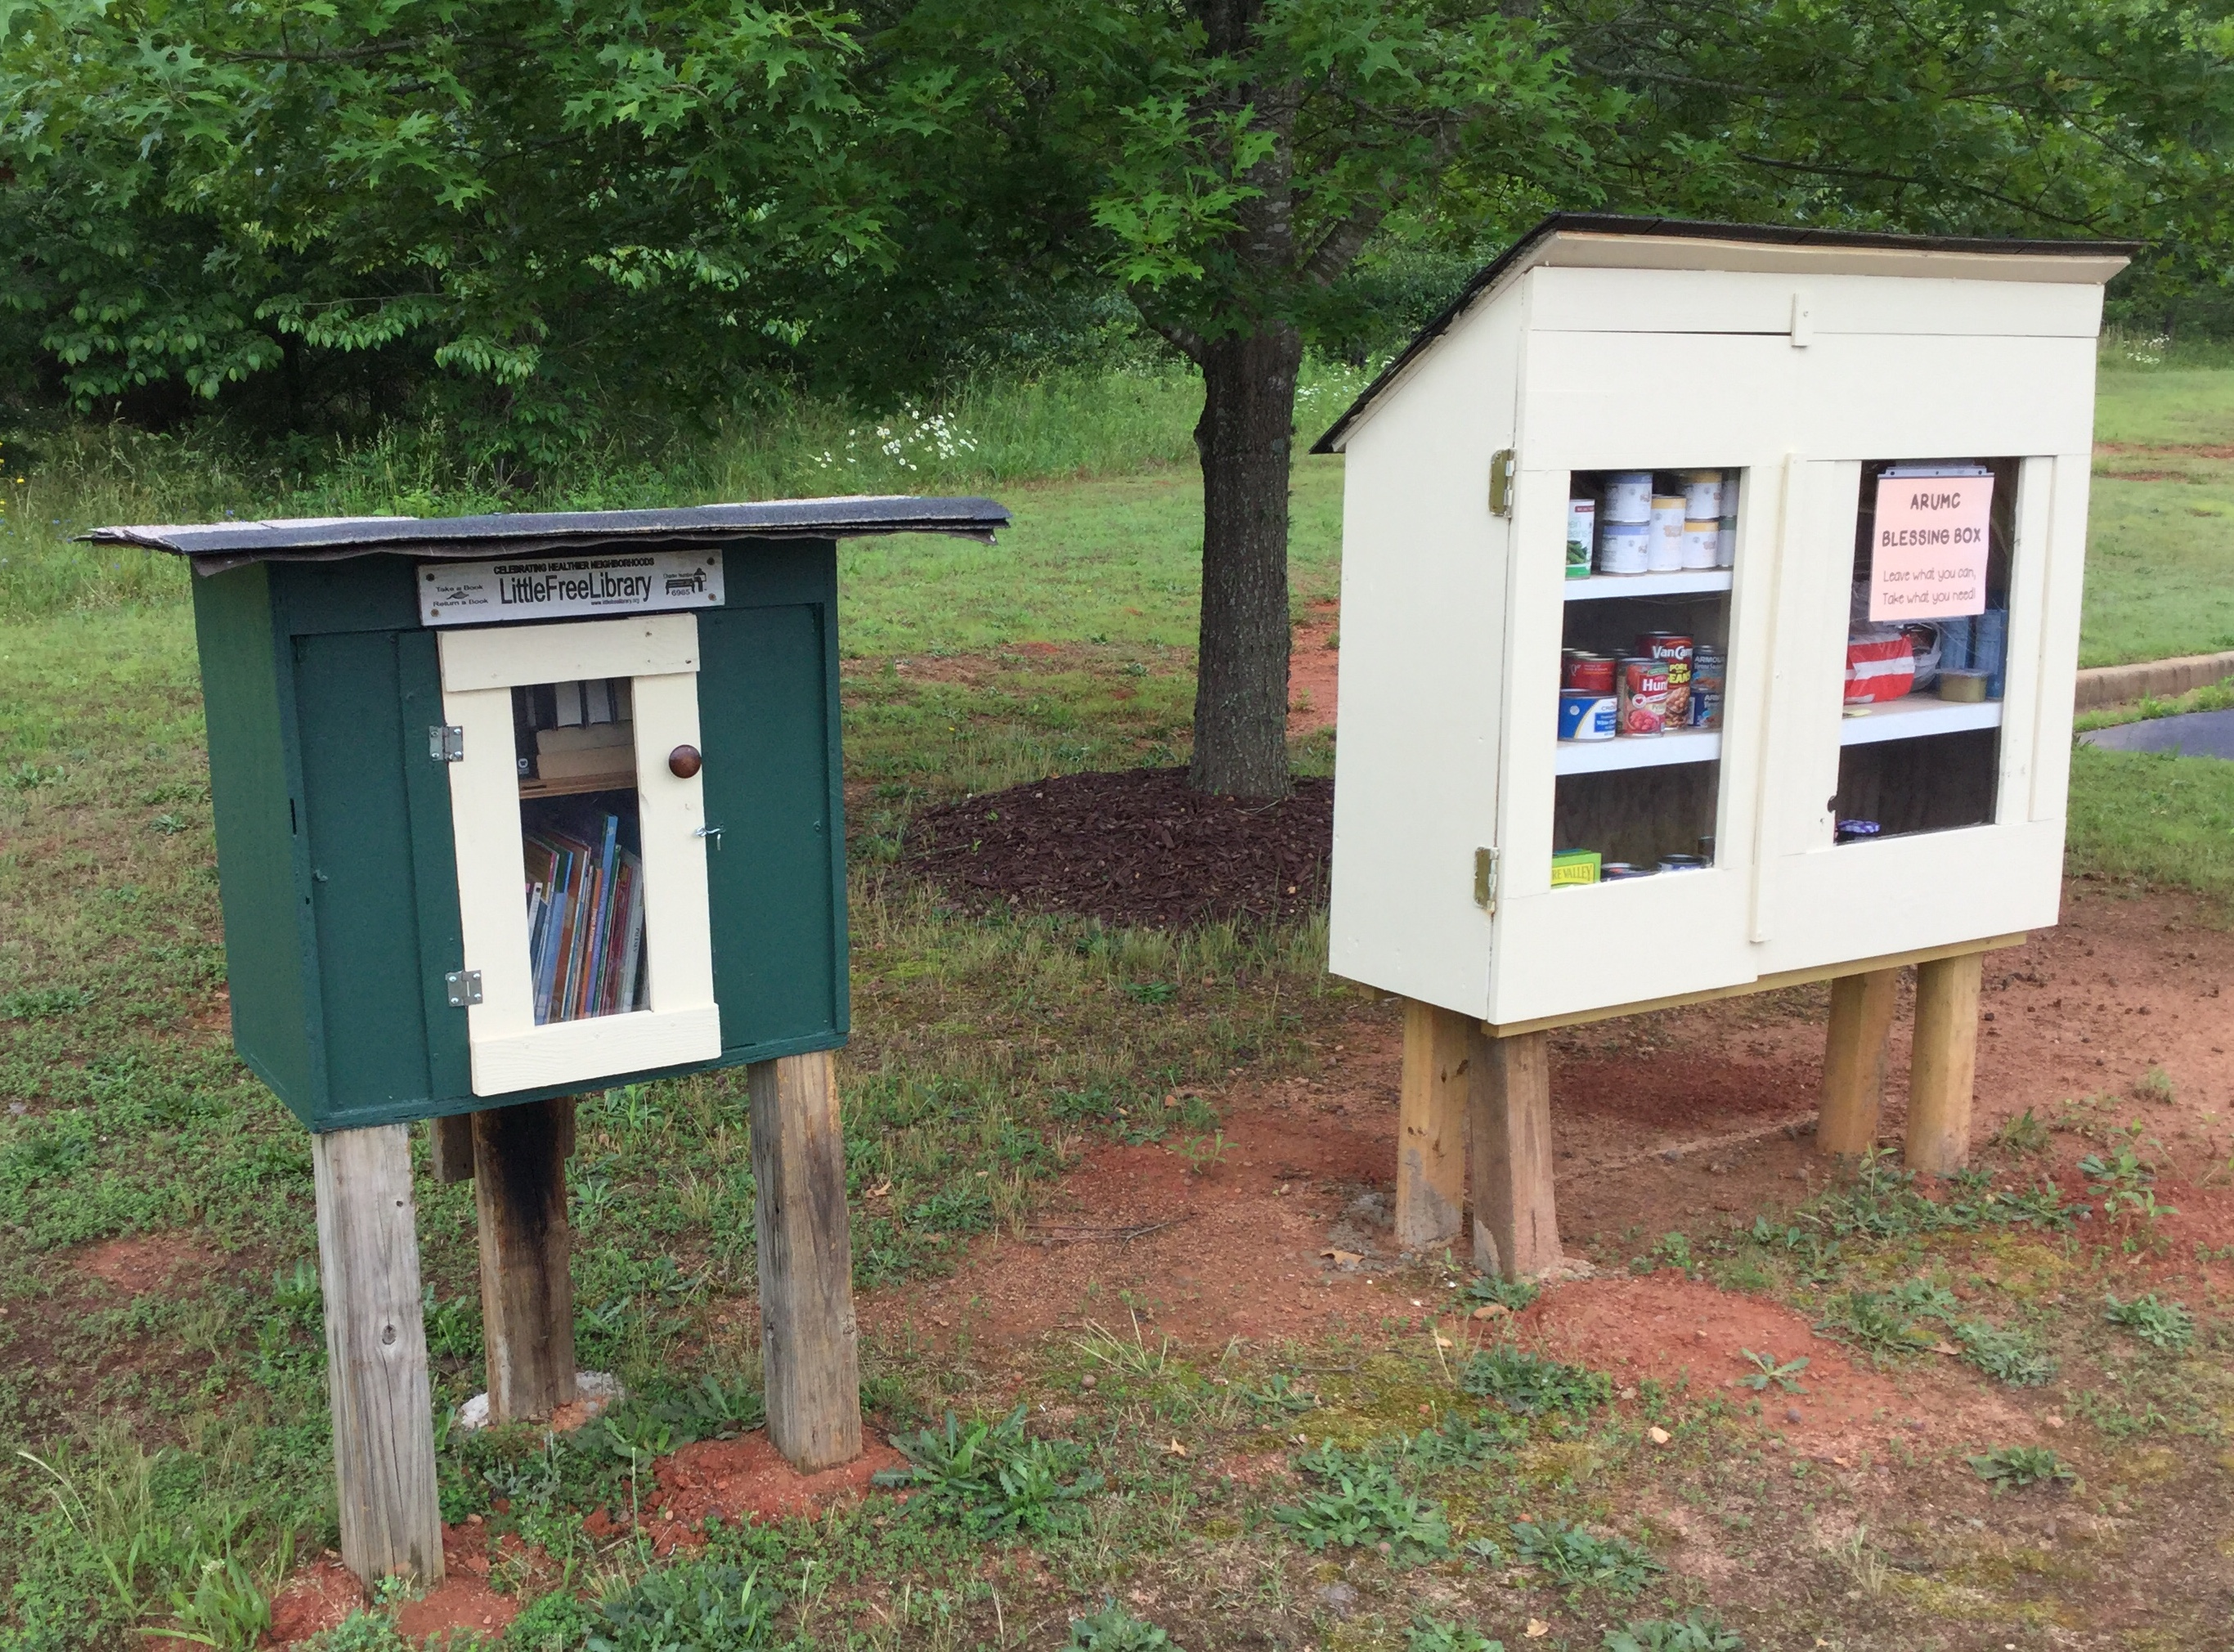 ARUMC Blessing Box Photo 1